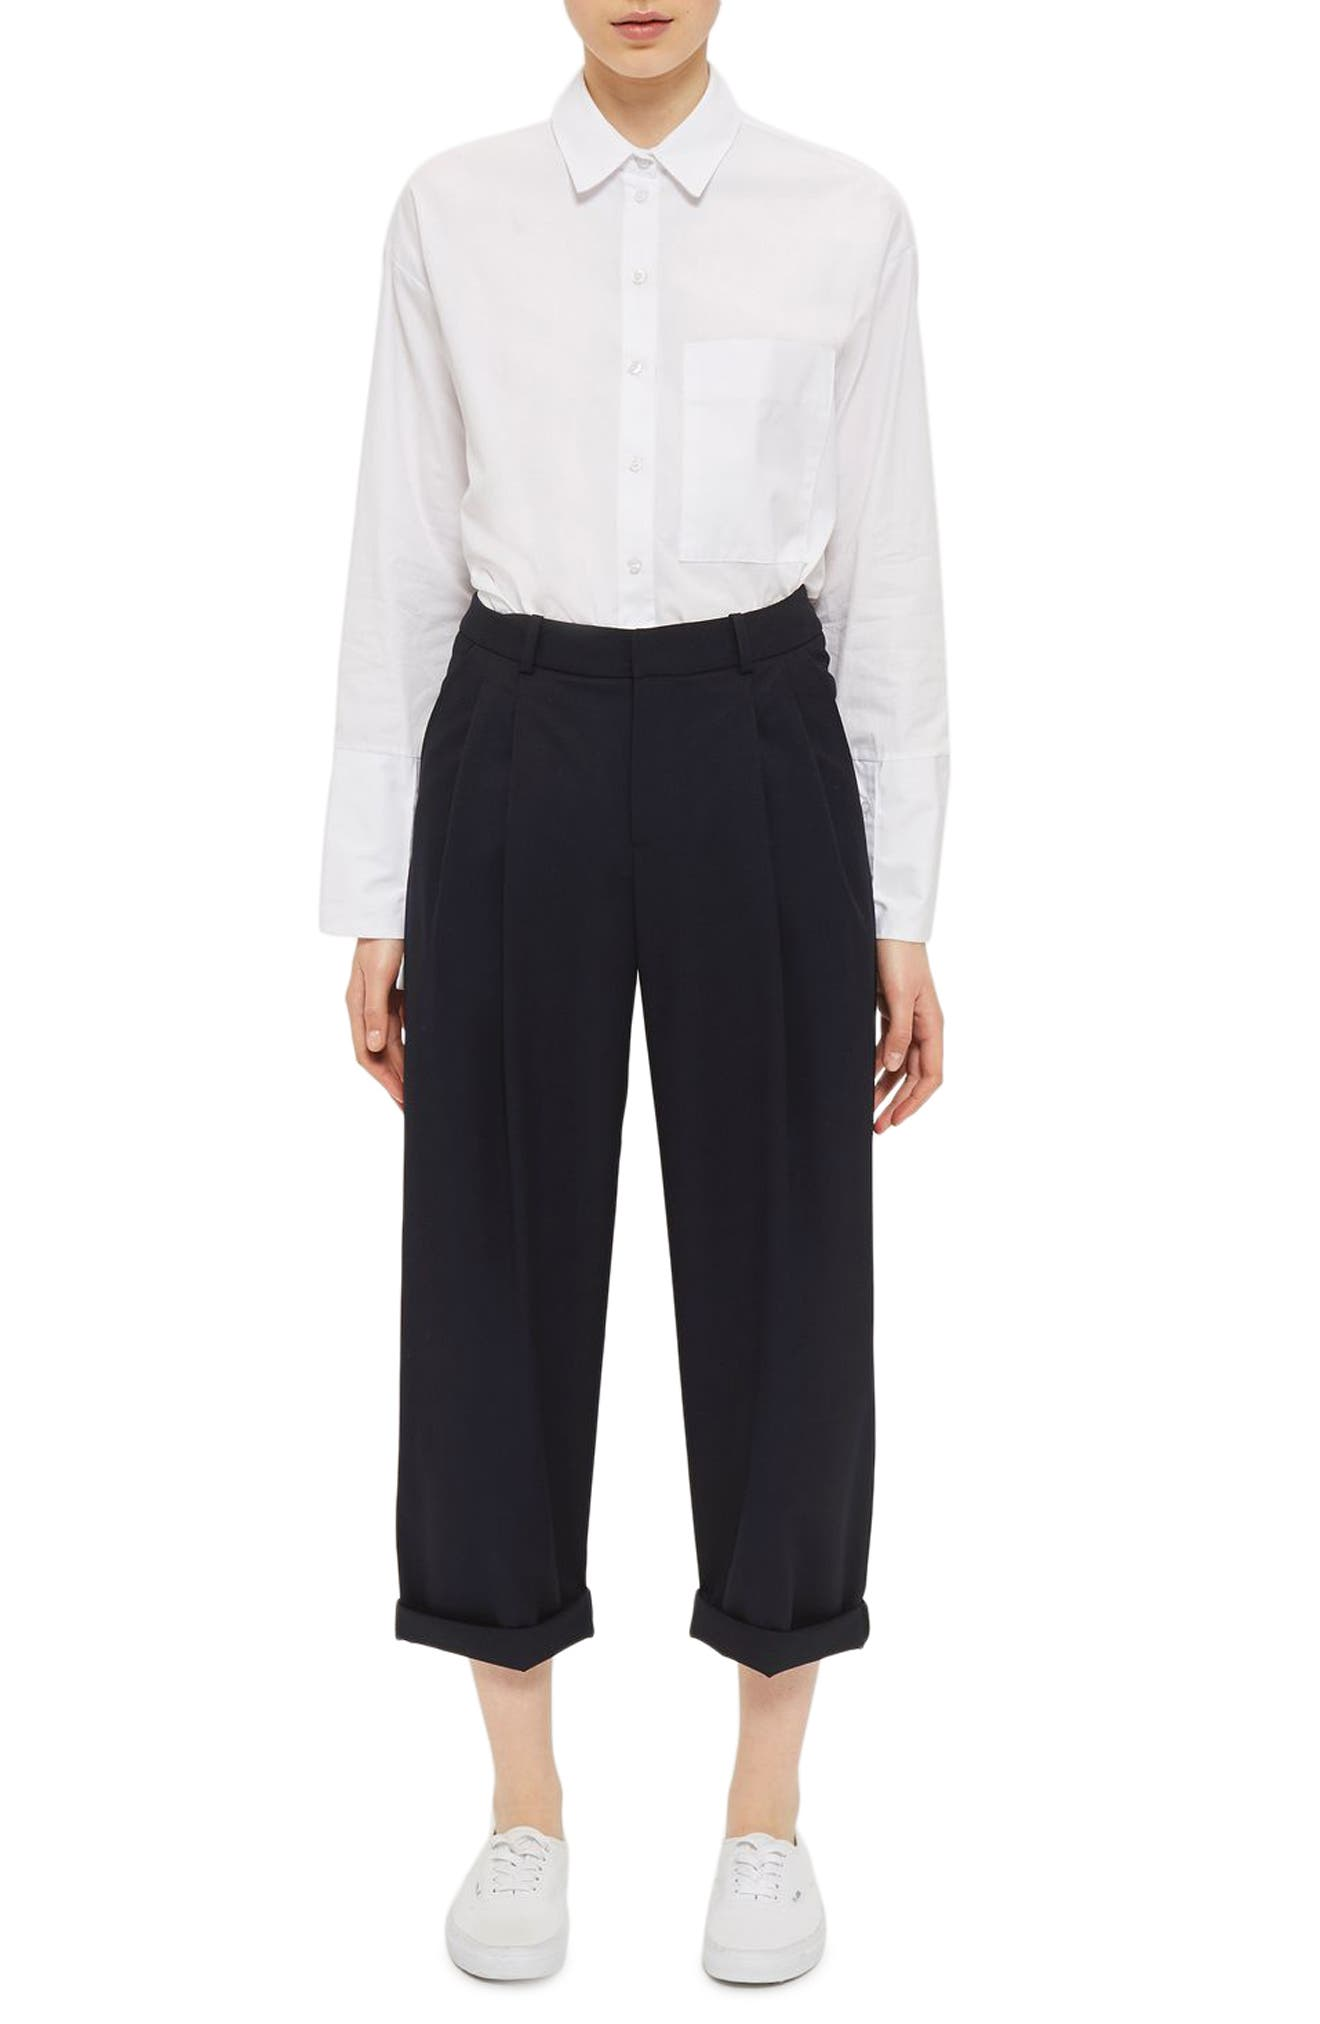 Topshop Boutique Mensy Trousers